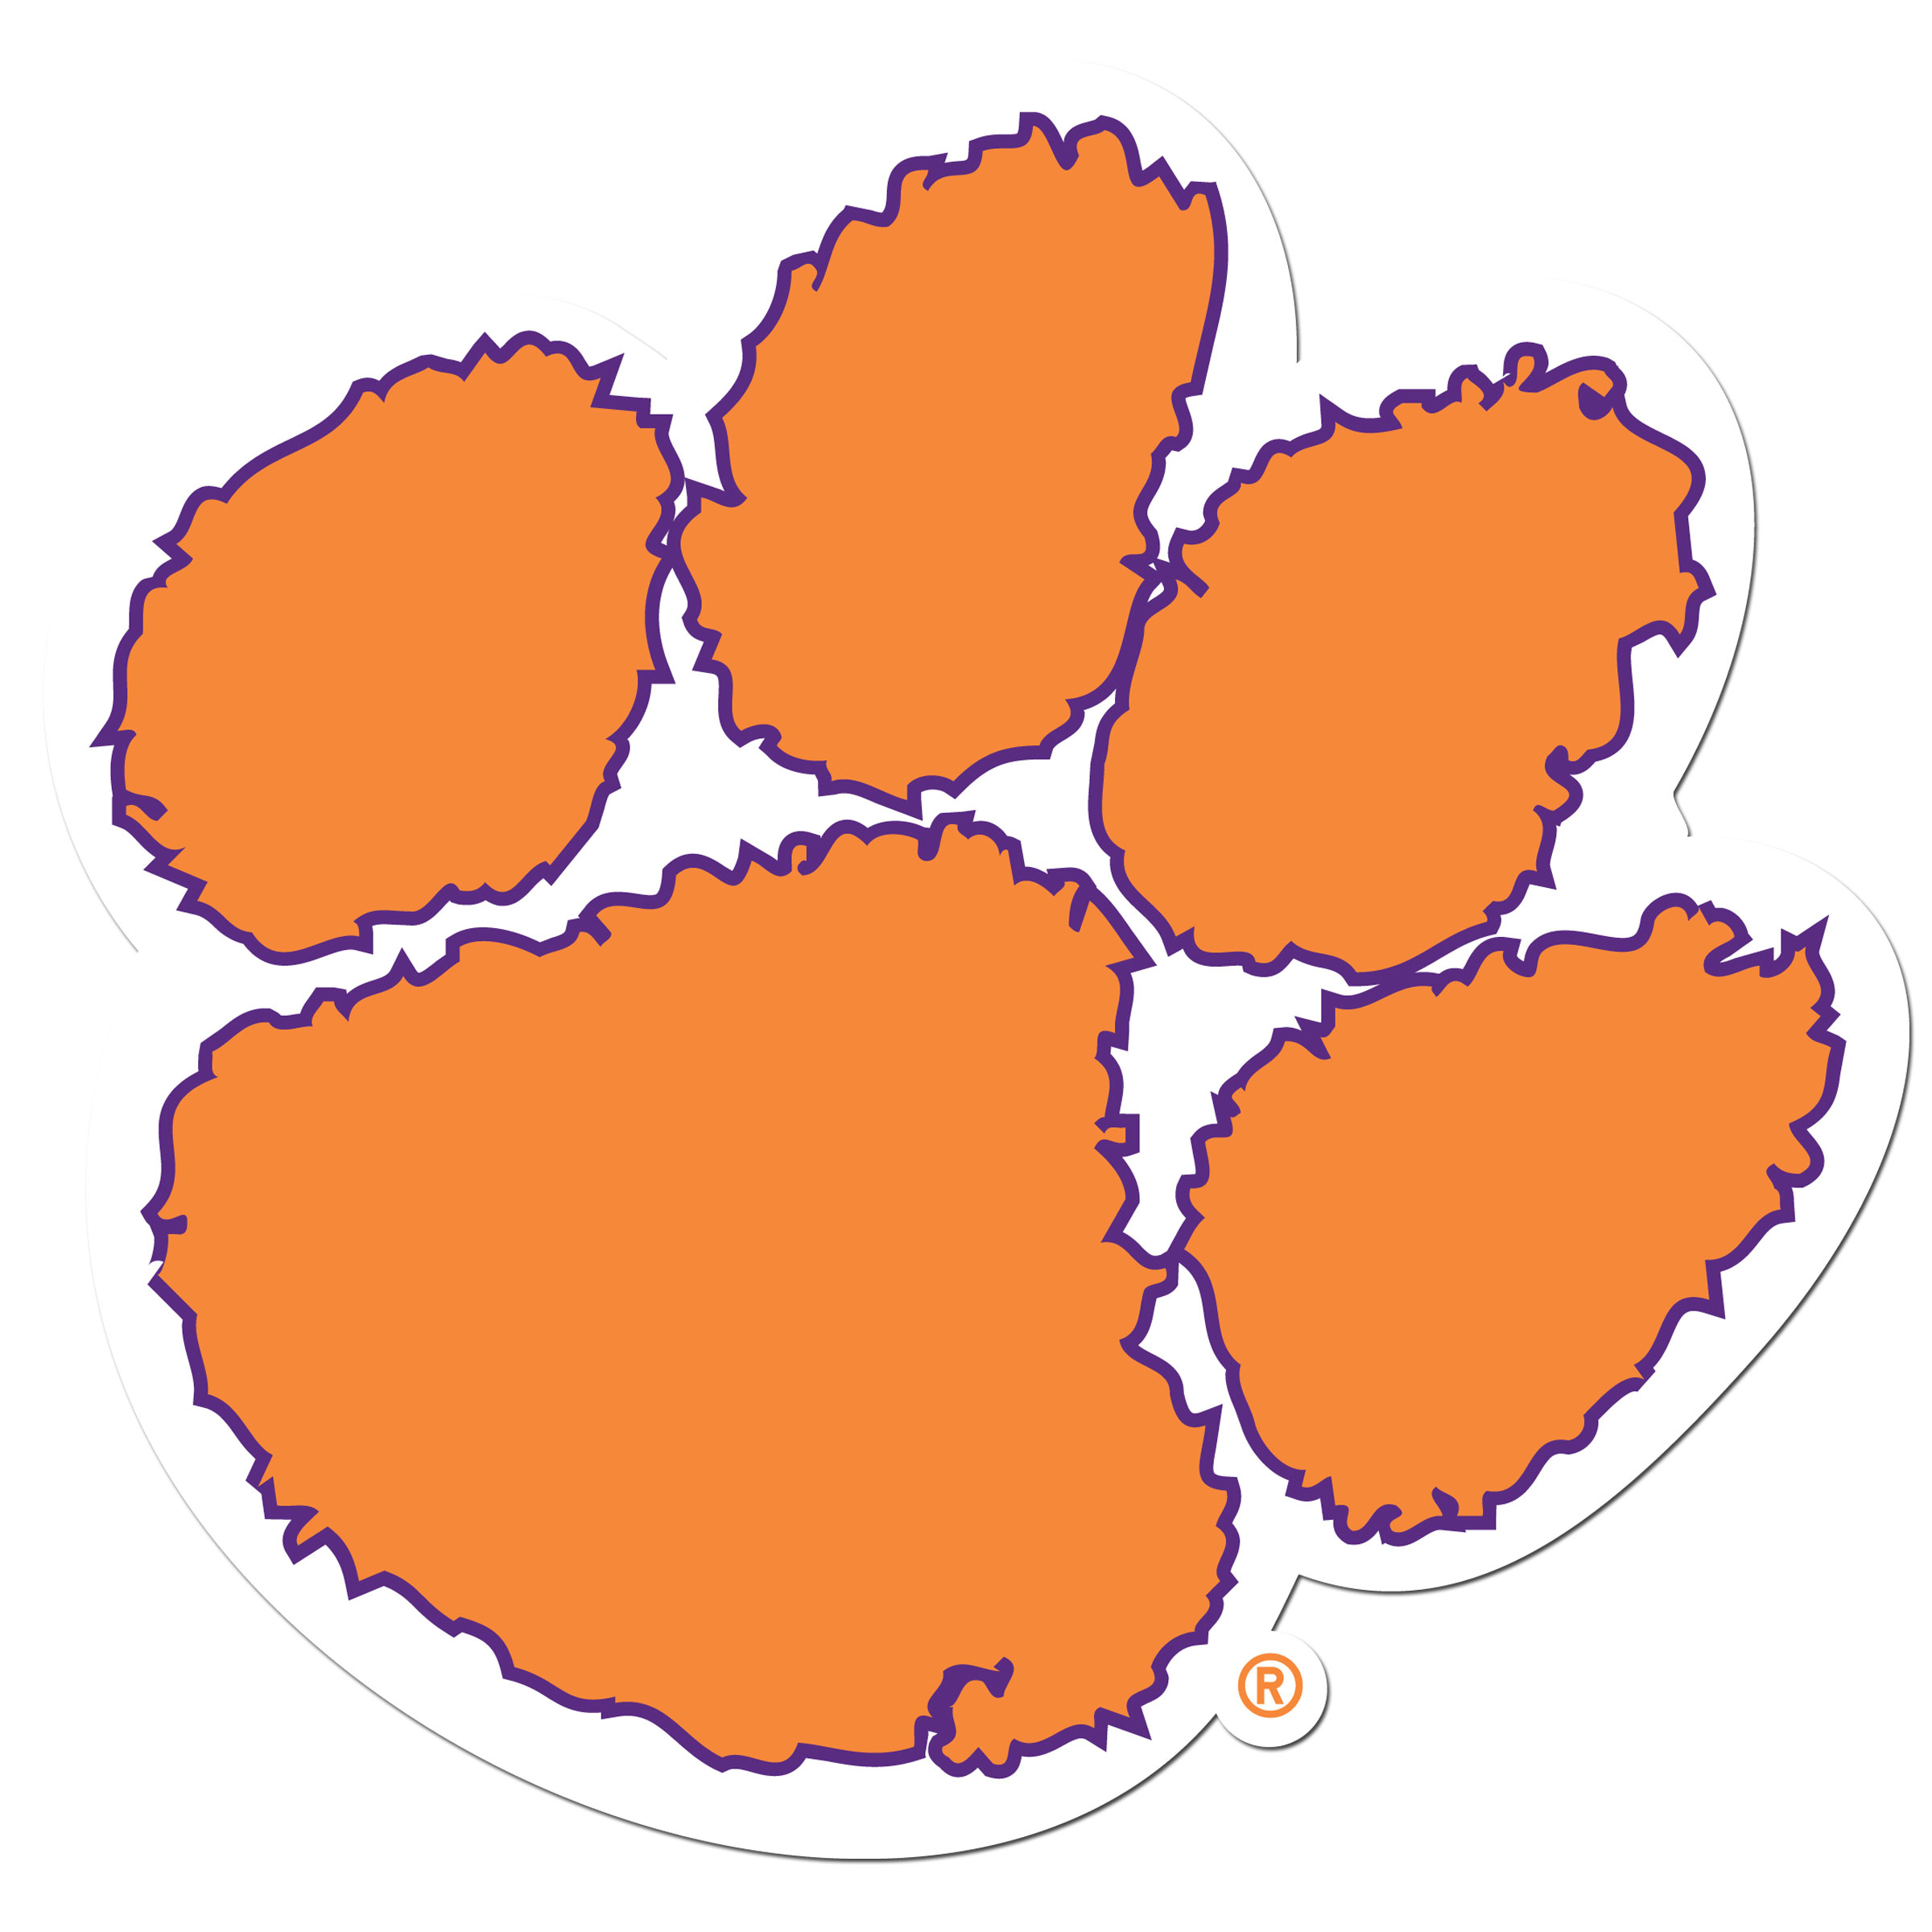 Clemson Tigers 8 inch Auto Decal - This bold, 8 inch Clemson Tigers is a great way to show off your team pride! The low tack vinyl decal is easily positioned and adjusted to make sure you get that logo in just the right spot on your vehicle. Designed to be used on the outside of the window.